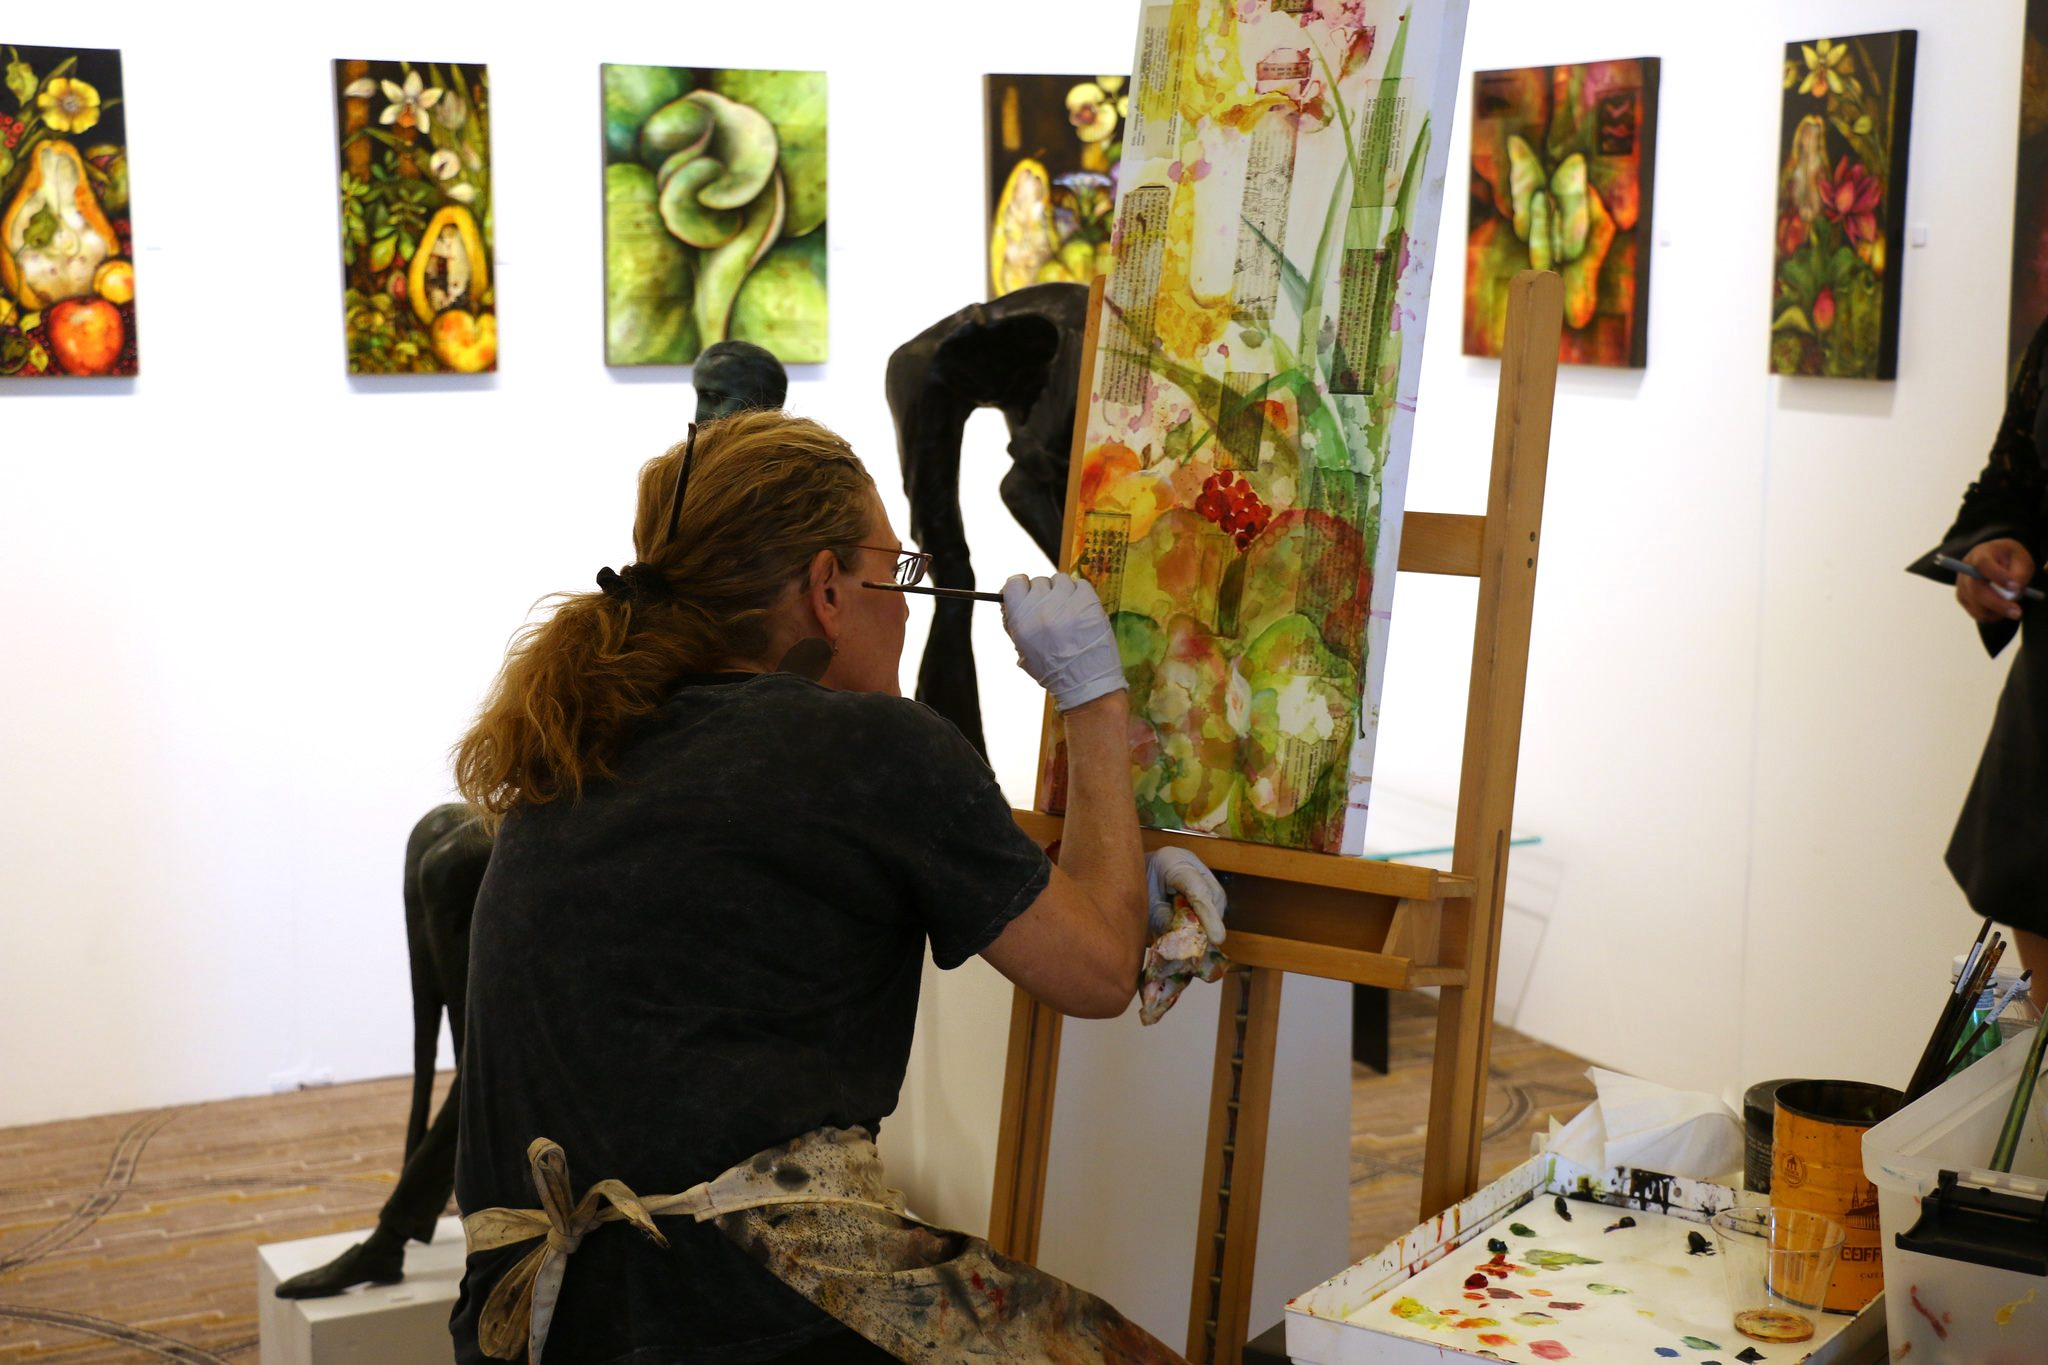 Live art demonstration by Ansley Pye of Contemporary Art Projects USA